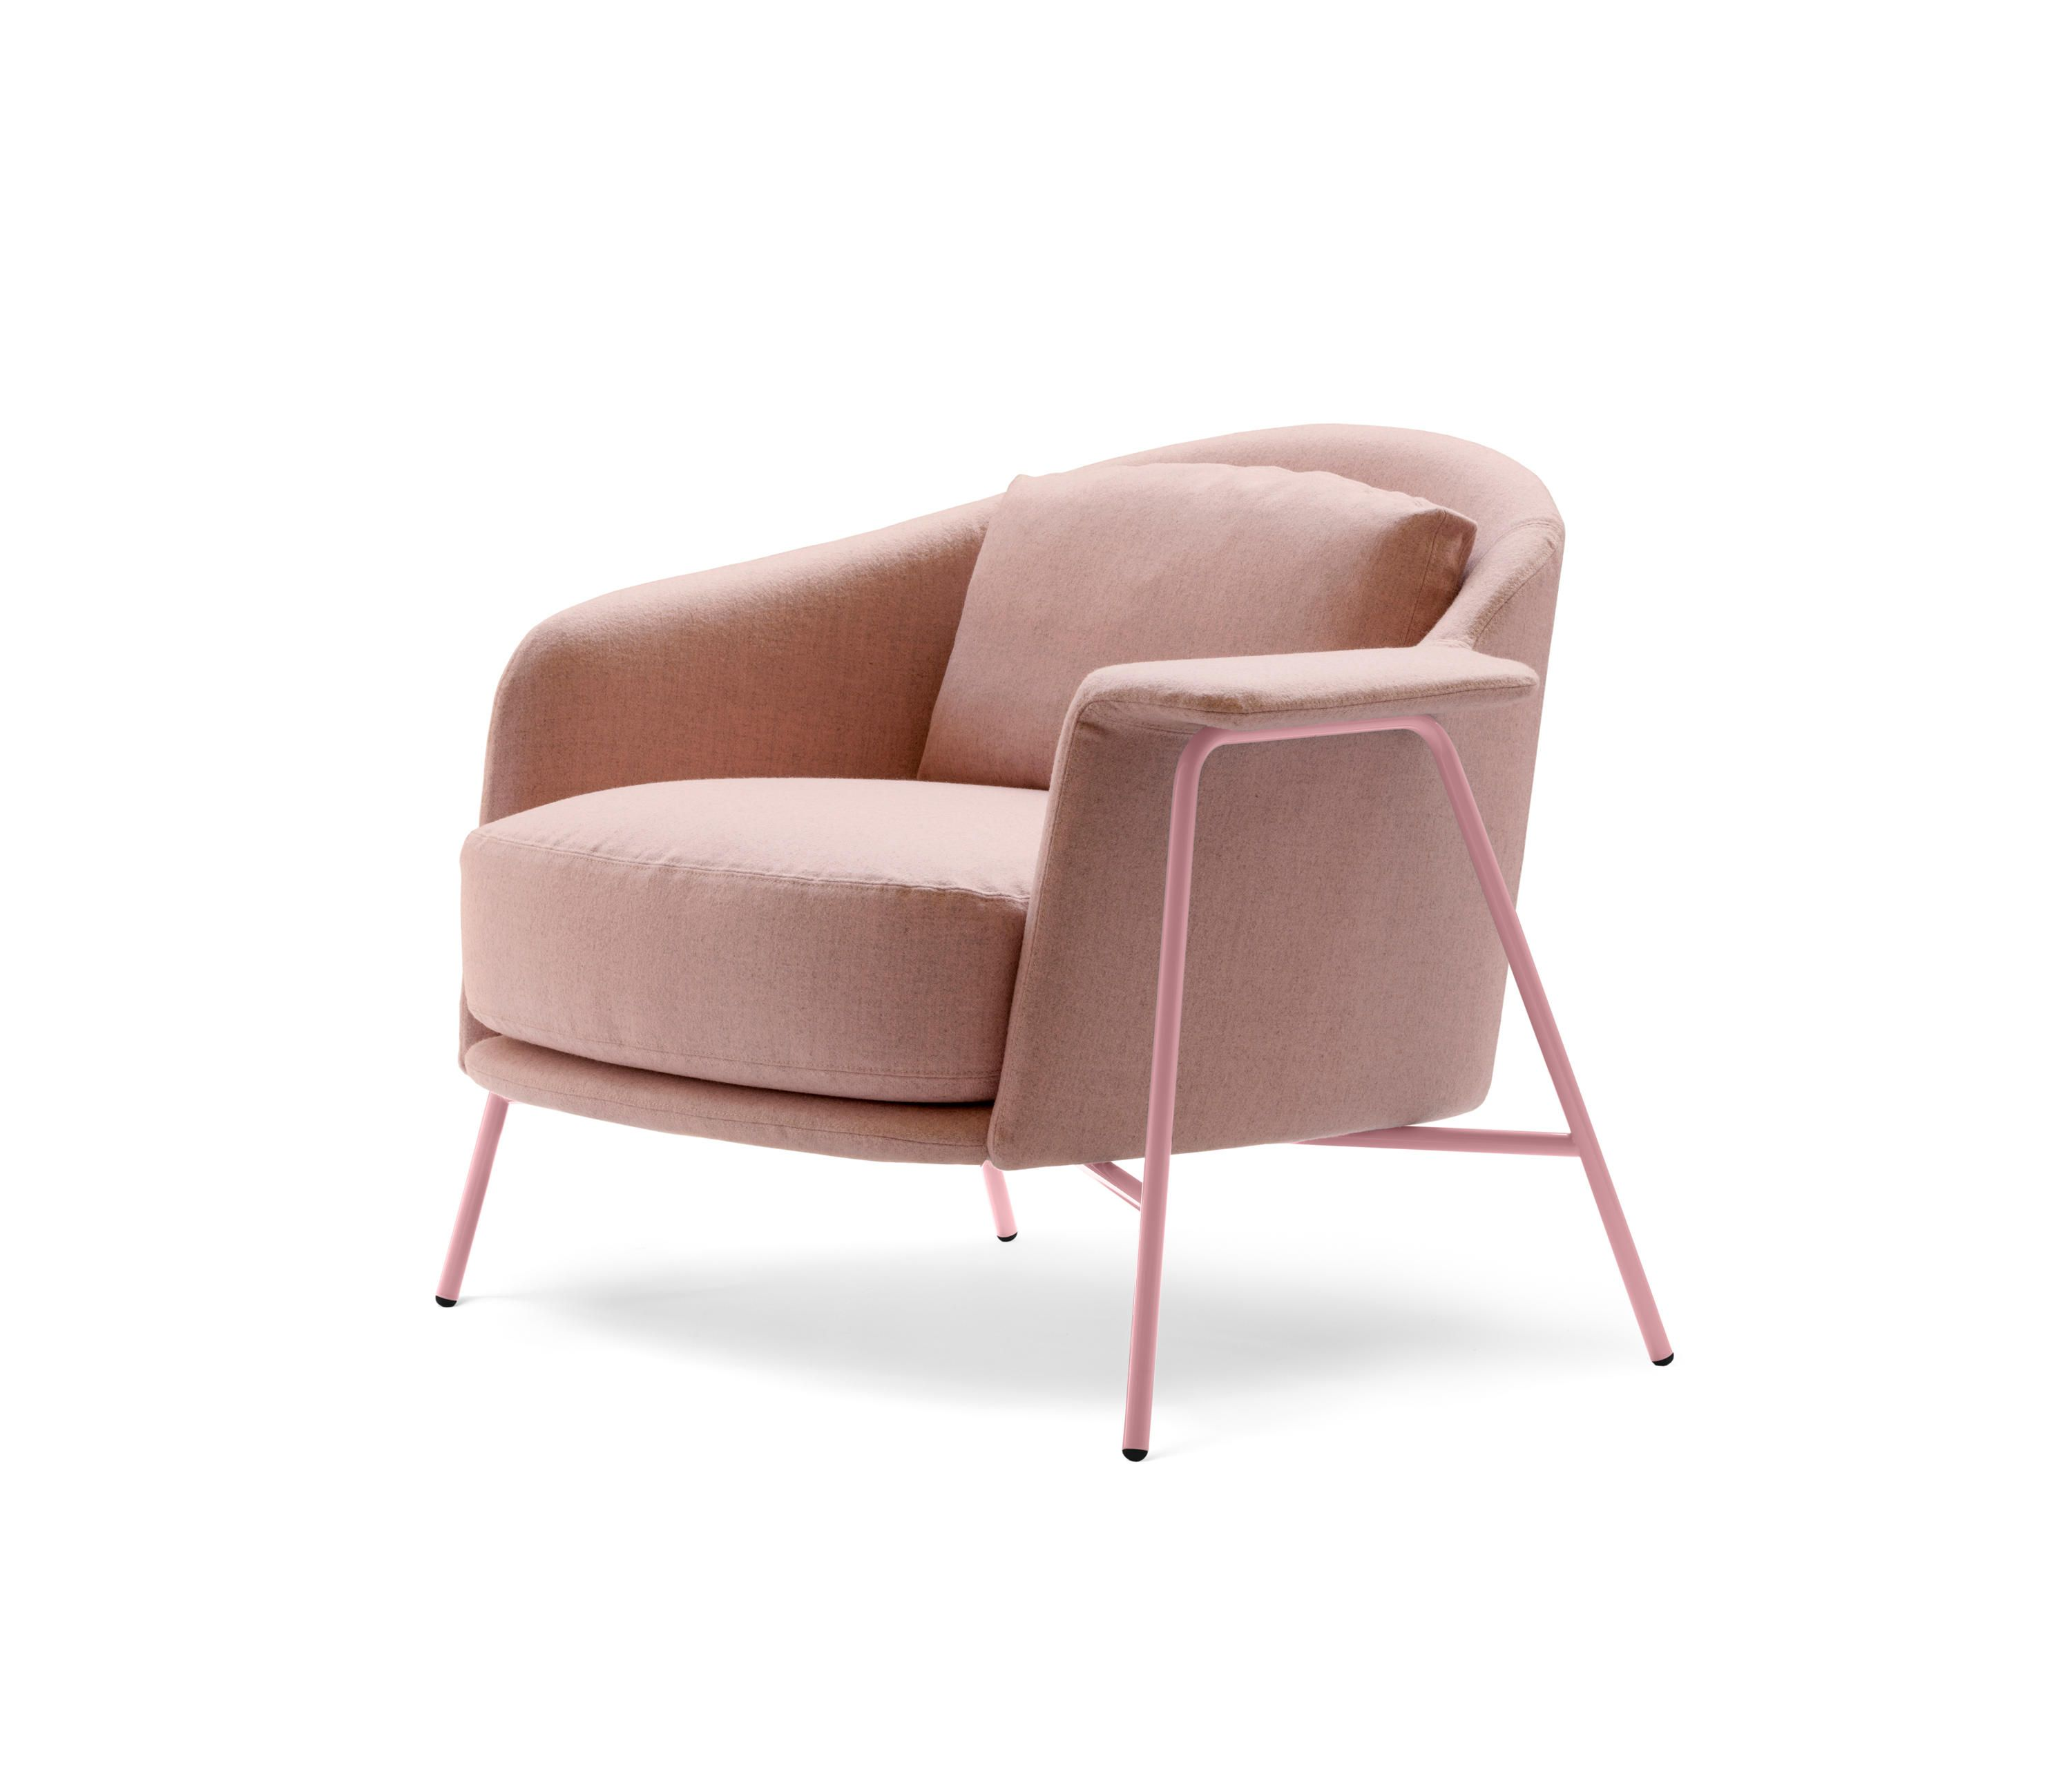 Kepi Armchair Designer Lounge Chairs From Saba Italia All Information High Resolution Images Armchair Furniture Lounge Chair Design Modern Sofa Designs